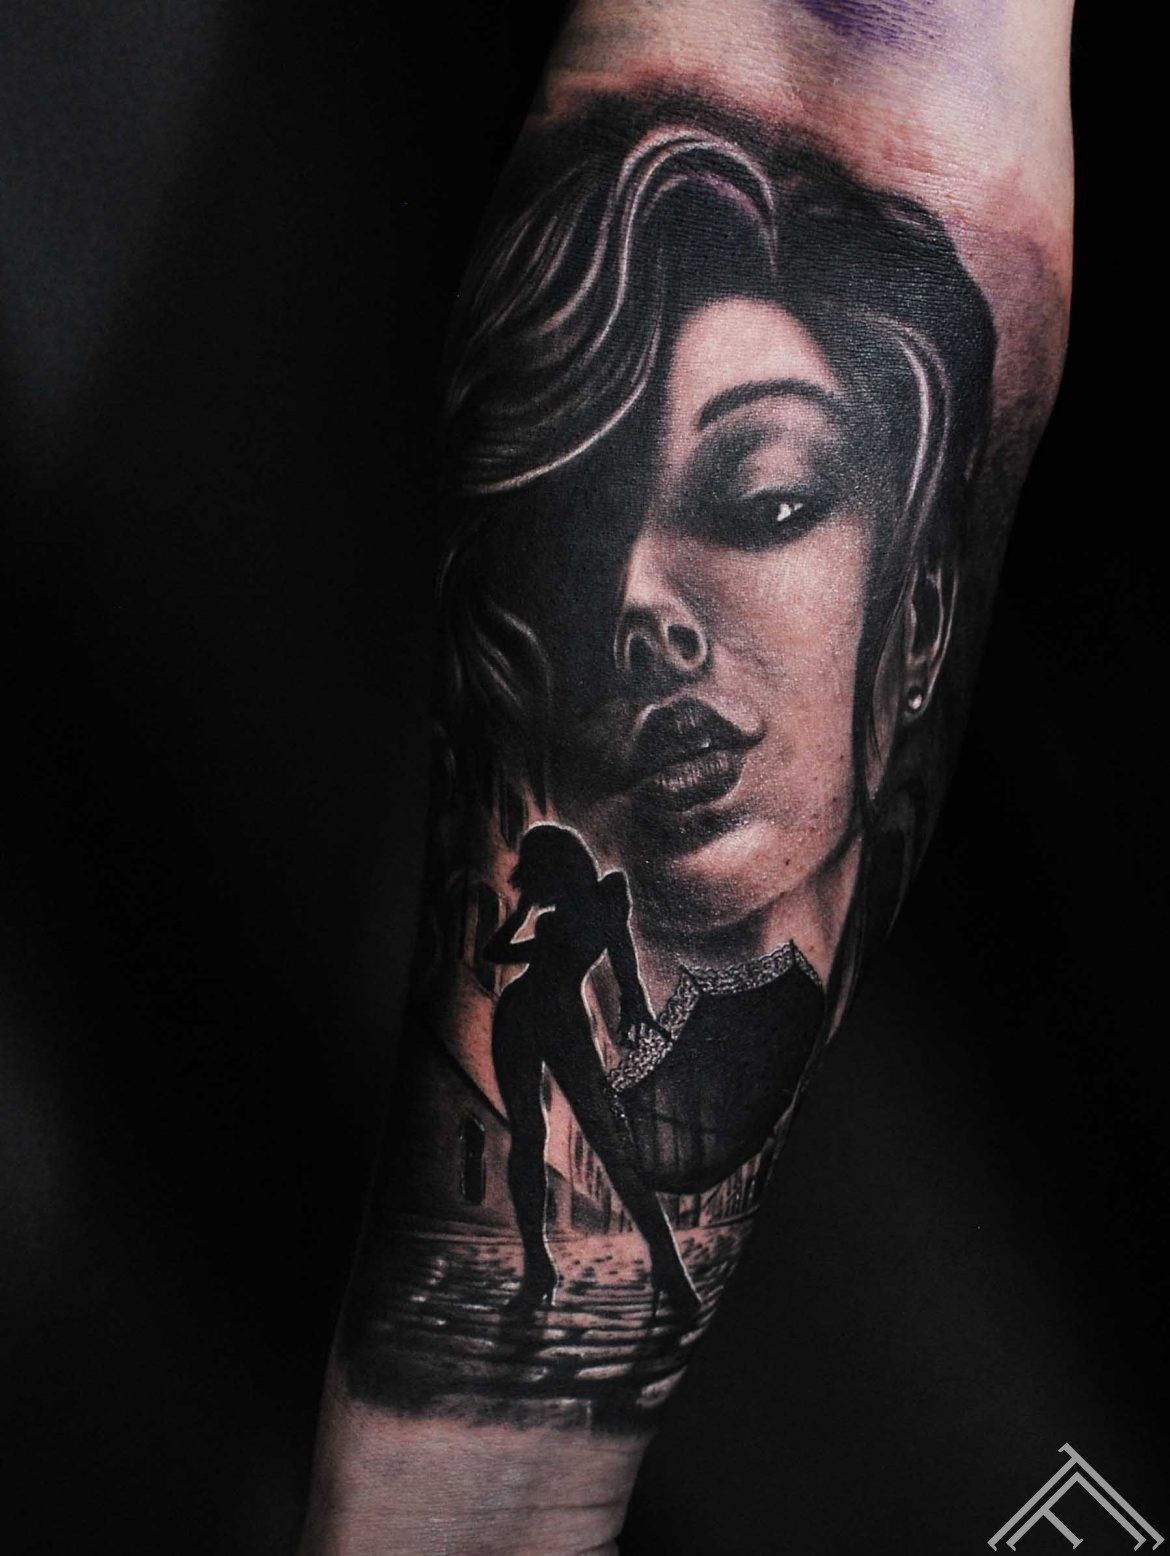 woman-portrait-anersontattoo-tattoofrequency-riga-art-mlapa